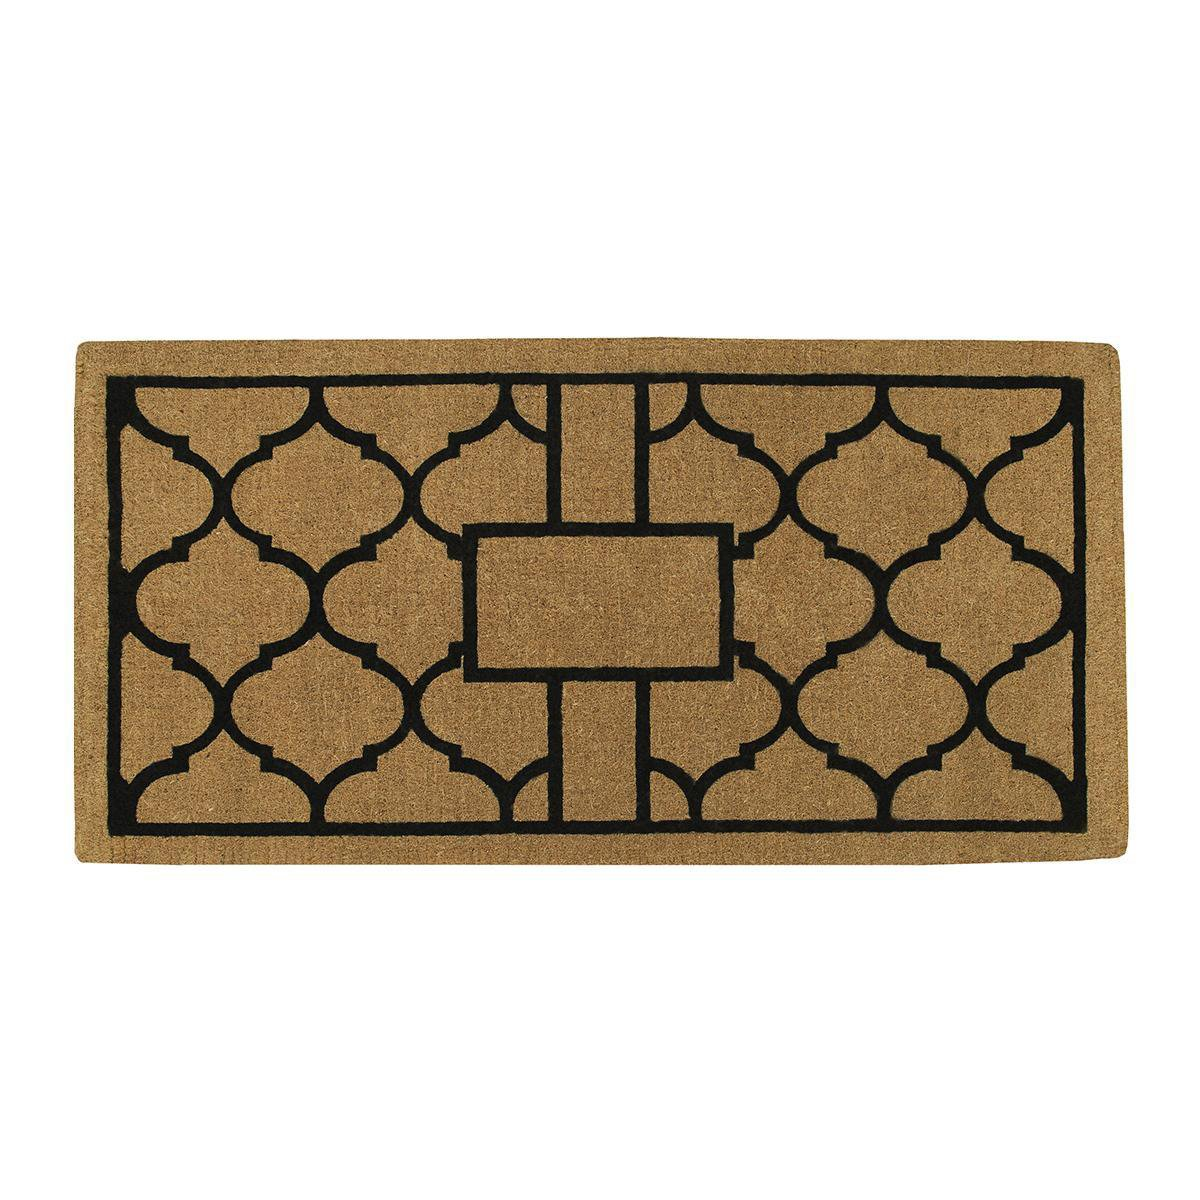 Home & More 18008PLAIN3672 Pantera Extra-Thick Doormat, 36'' x 72'' x 1.50'' , Natural/Black by Home & More